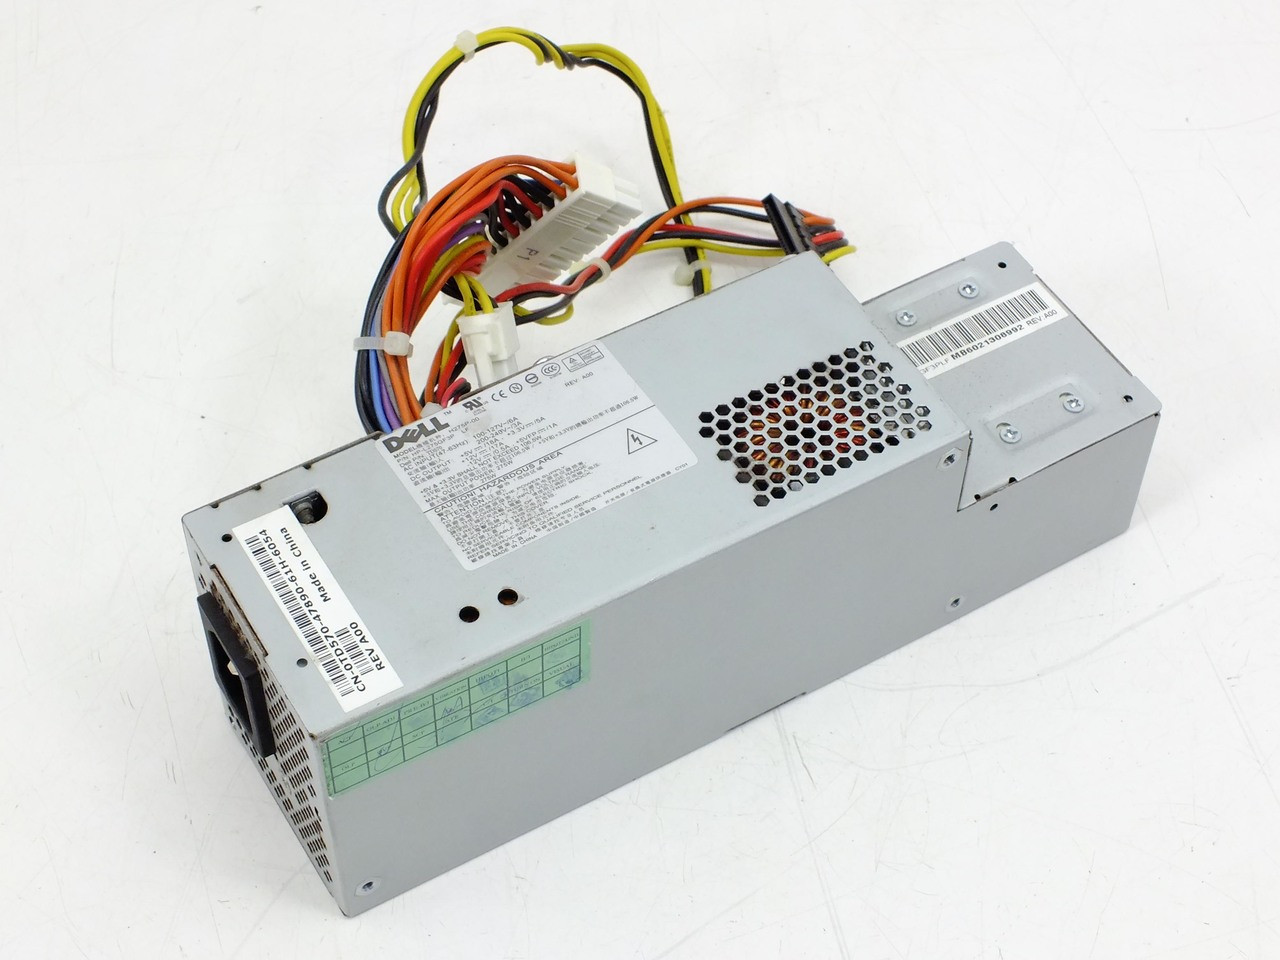 dell 275 w computer power supply 0td570 h275p 00 hp l275gf3p td570 5.40__02121.1490058174?c=2 dell td570 275 w computer power supply 0td570 h275p 00 hp l275gf3p  at gsmportal.co